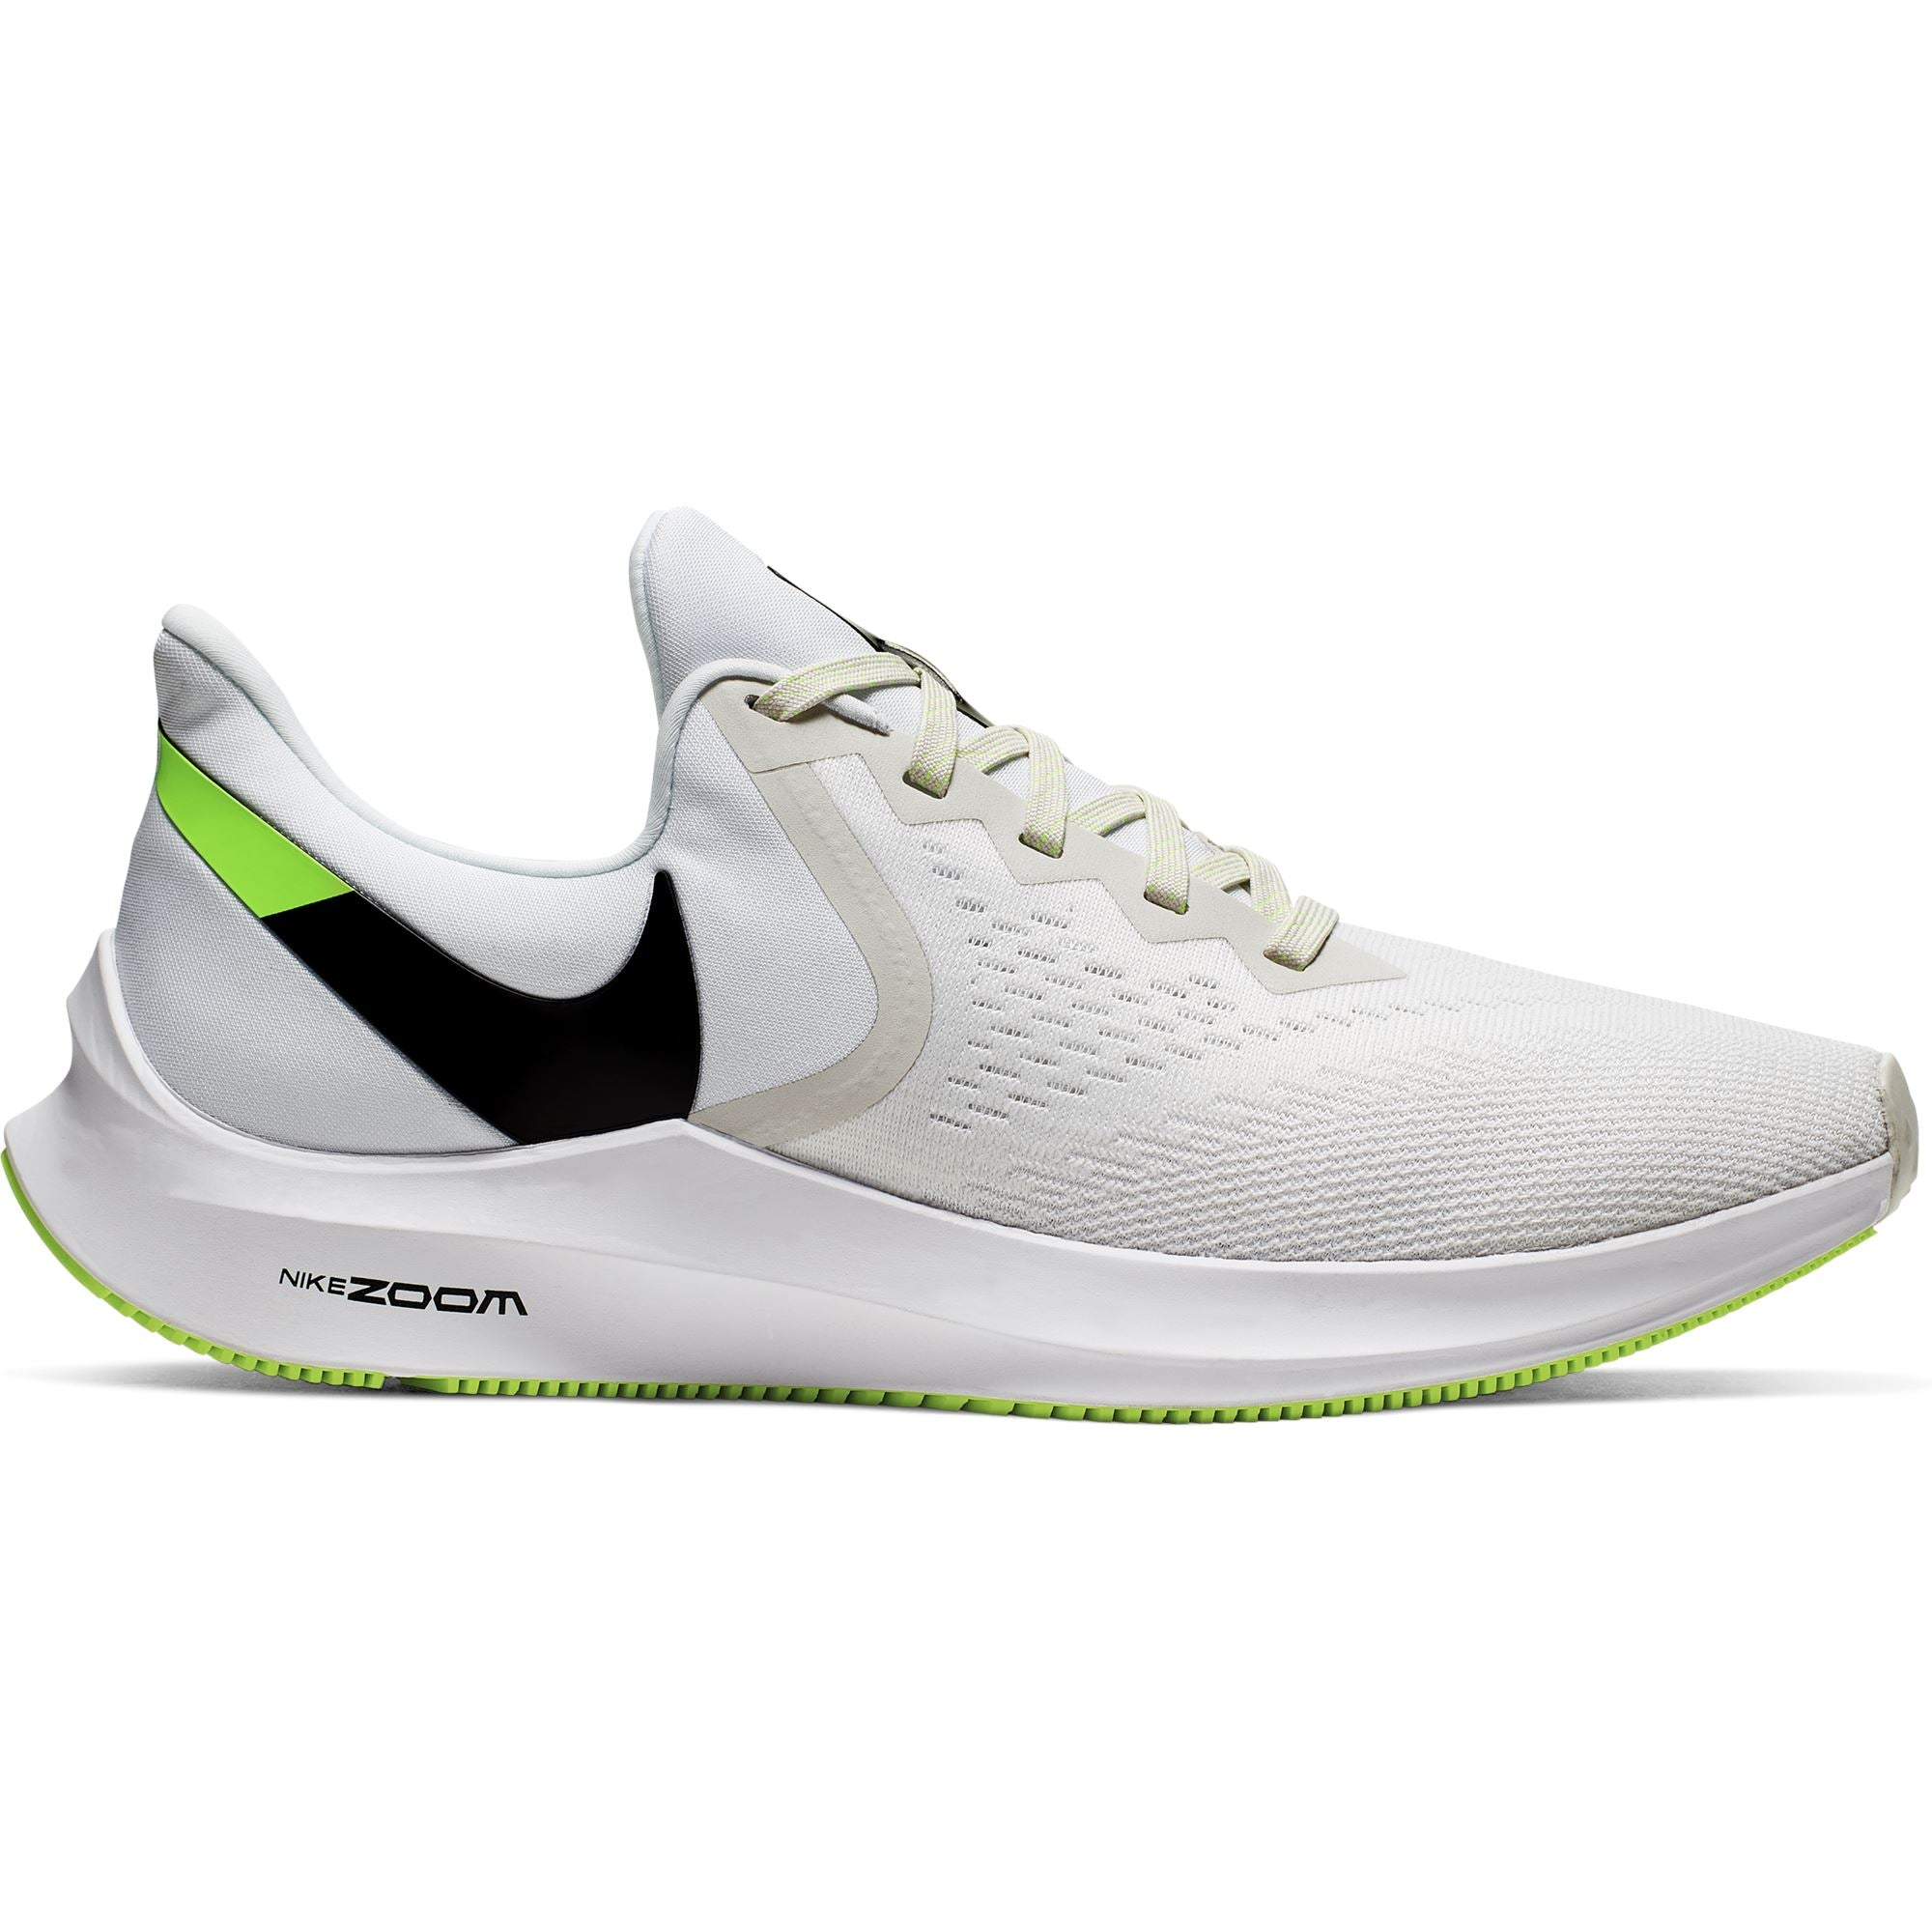 Nike Mens Air Zoom Winflo 6 - Platinum Tint/Black-White-Electric Green SP-Footwear-Mens Nike